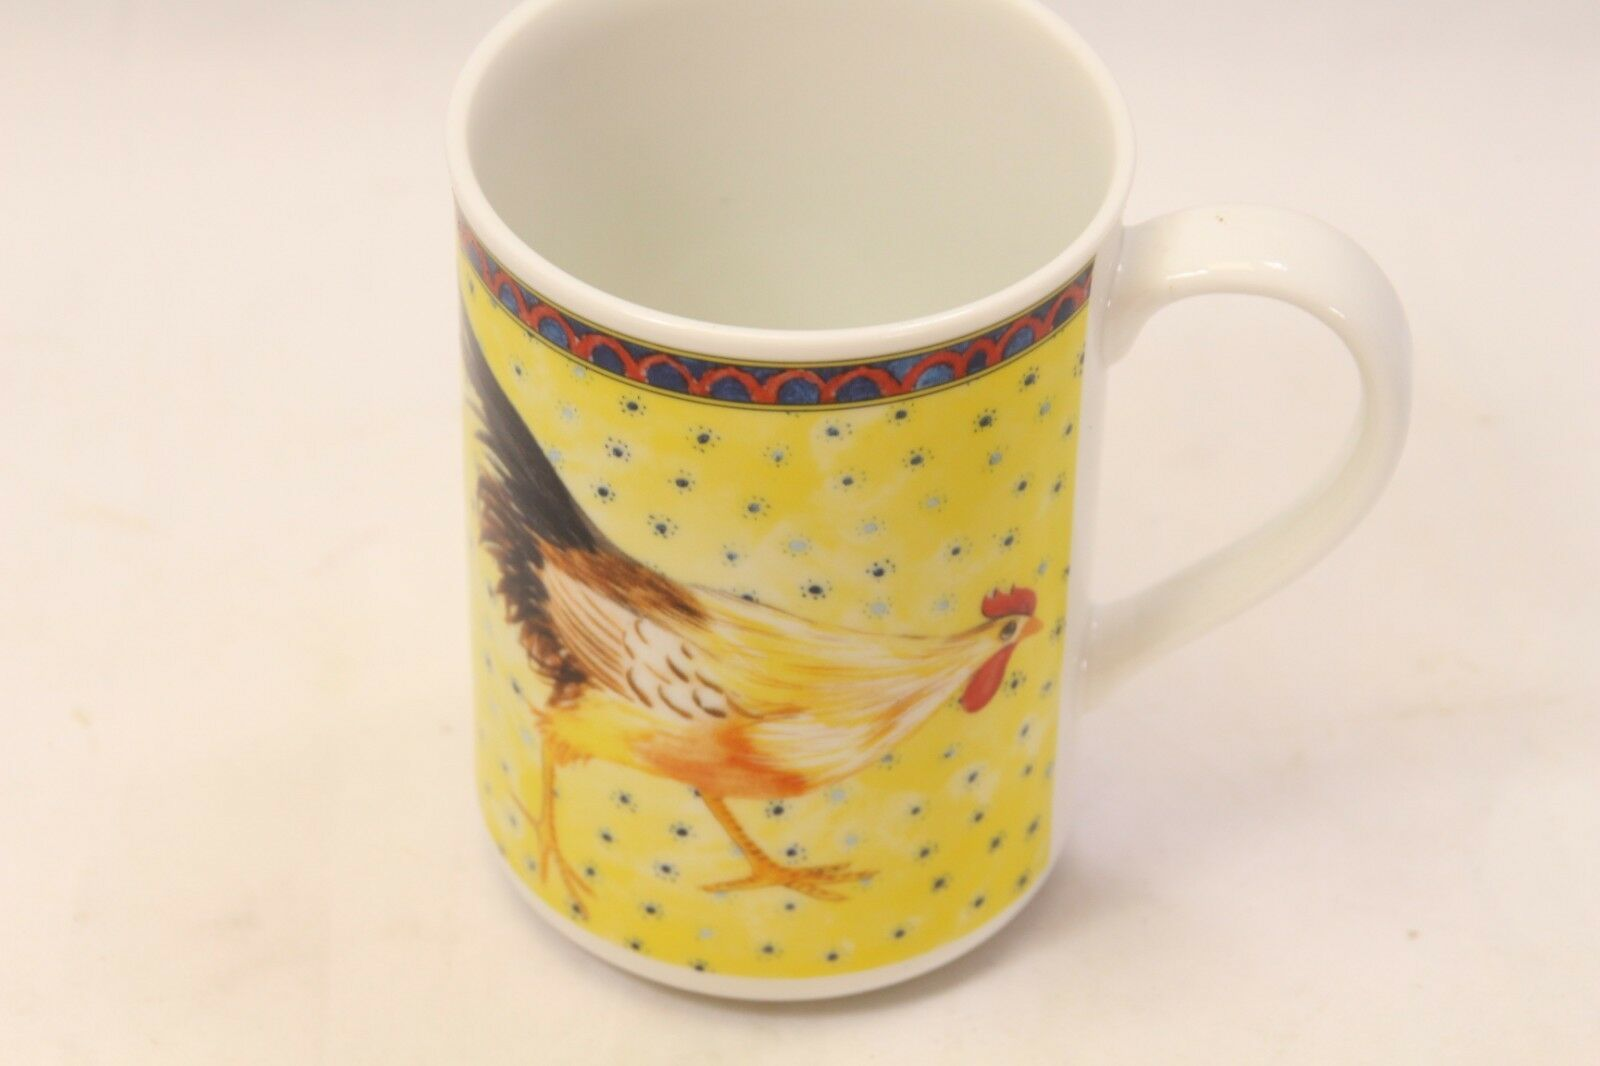 American Atelier Petite Provence Rooster Mugs Set of 12 image 3